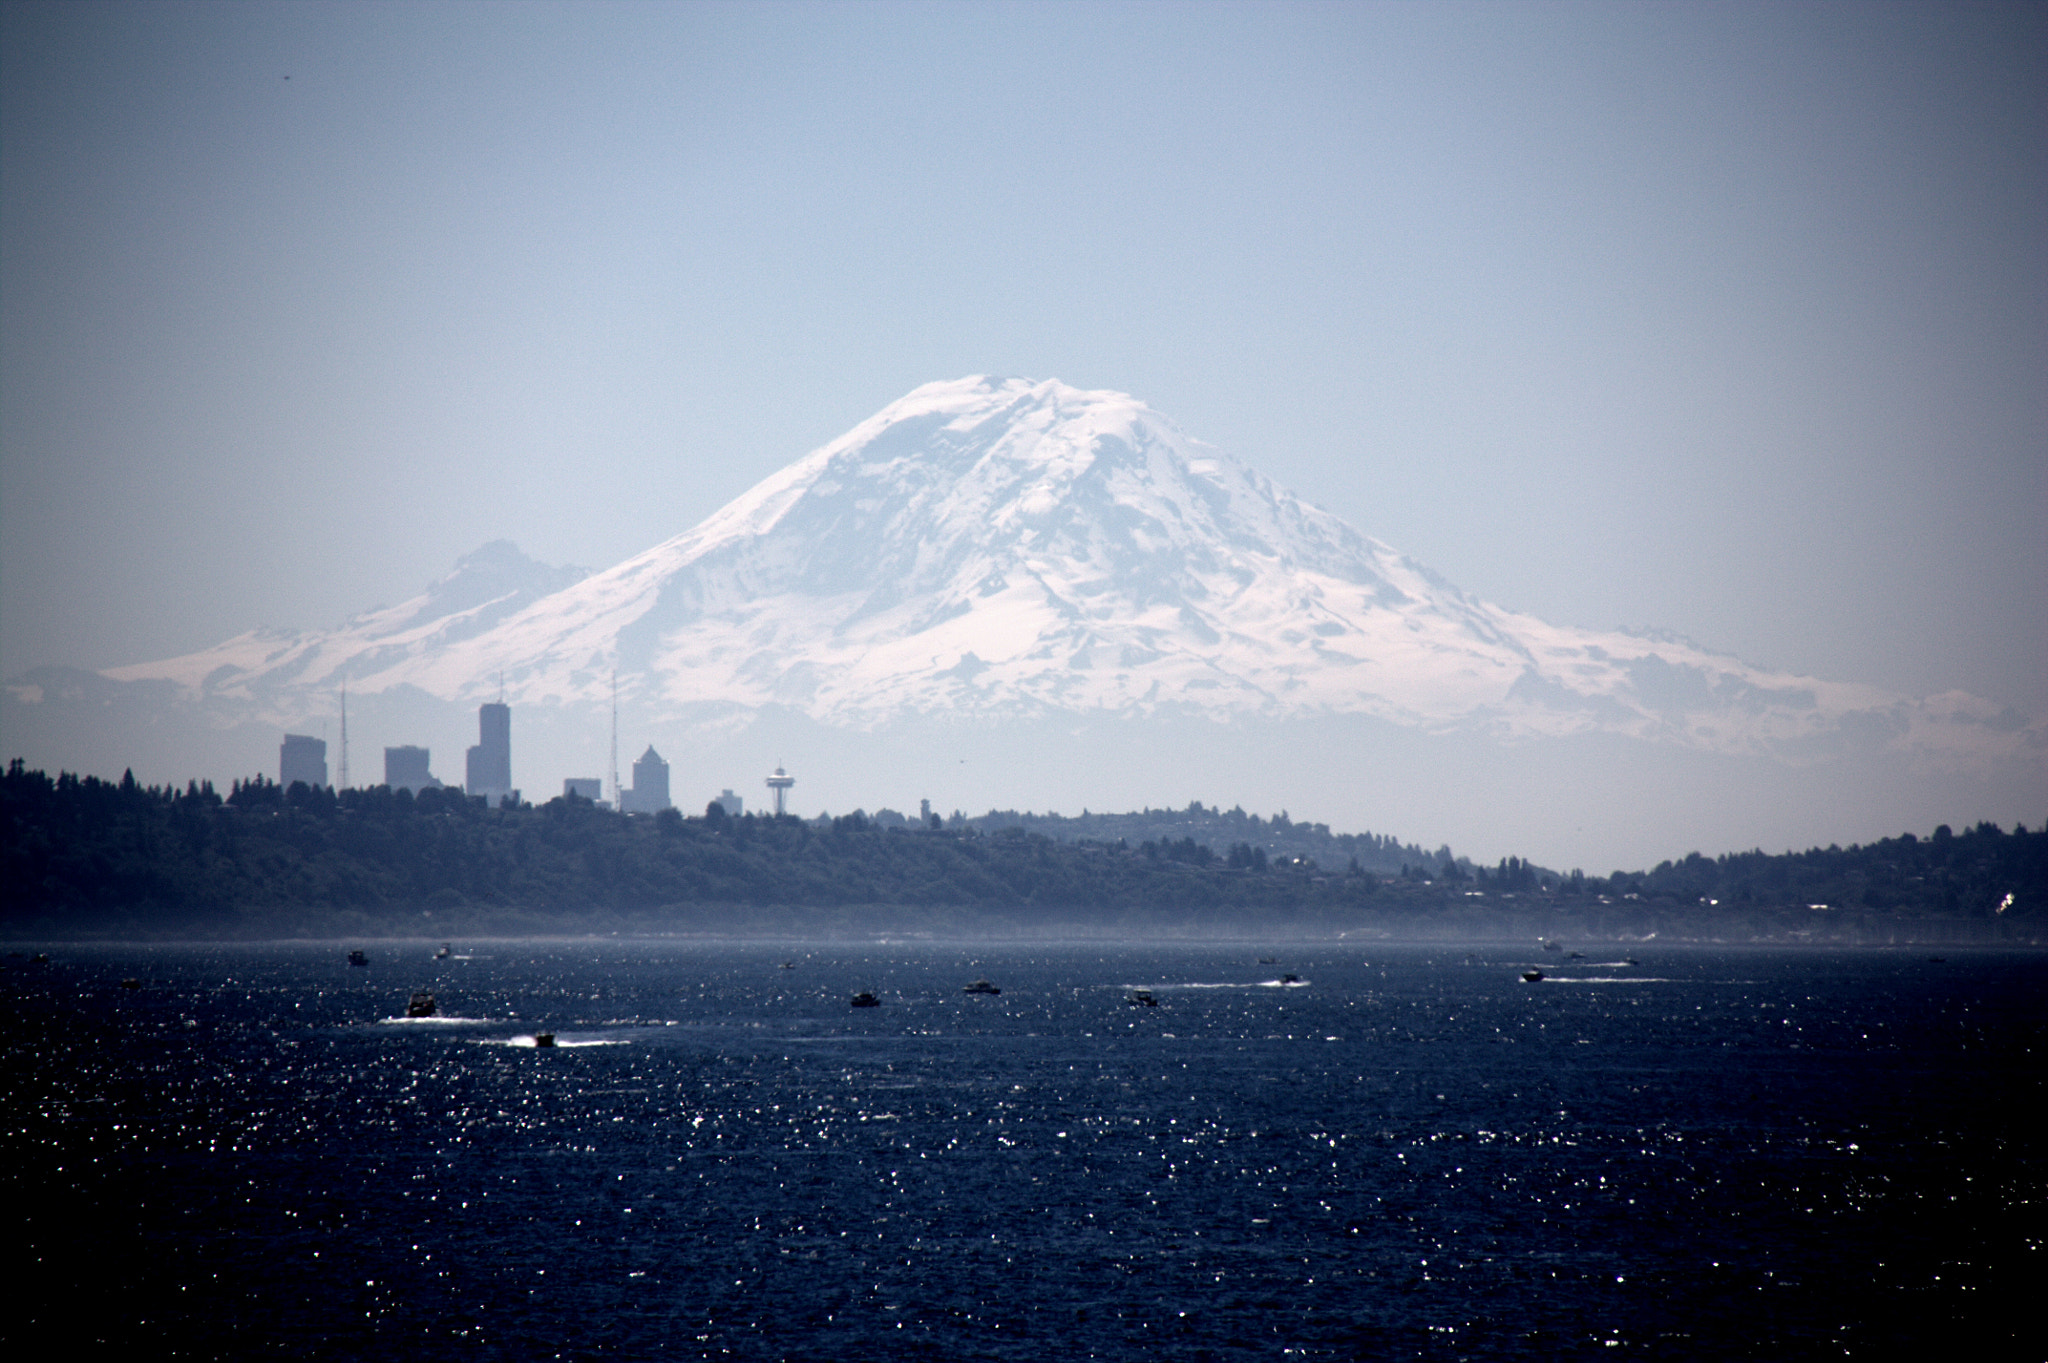 Photograph Seattle and Mt Rainier by Flore Y on 500px